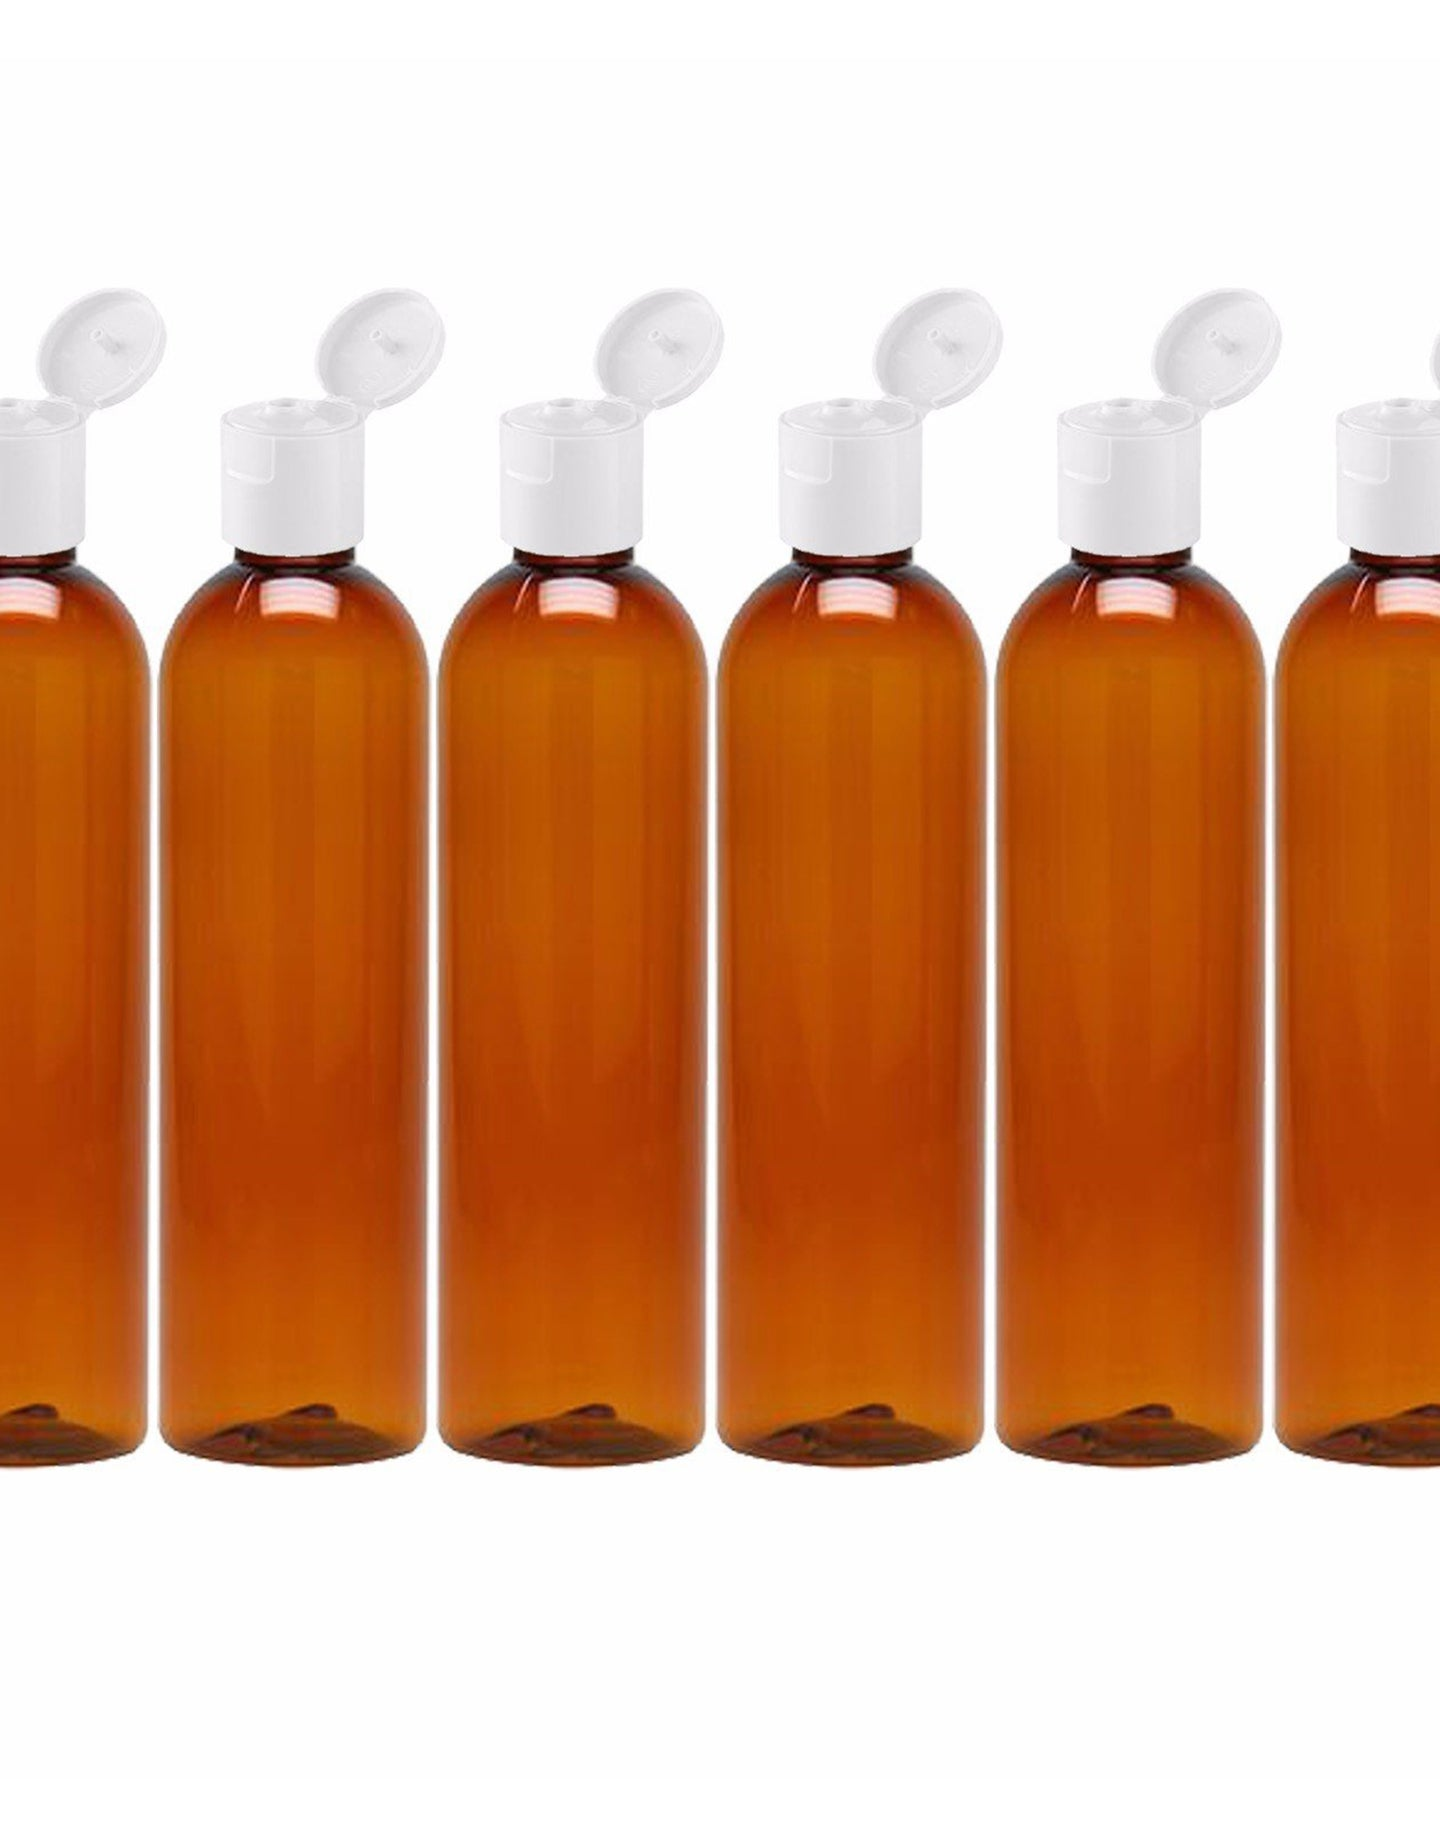 MoYo Natural Labs 8 oz Travel Bottle, Empty Travel Containers with Flip Caps, BPA Free PET Plastic Squeezable Toiletry/Cosmetic Bottle (6 Pack, Amber)